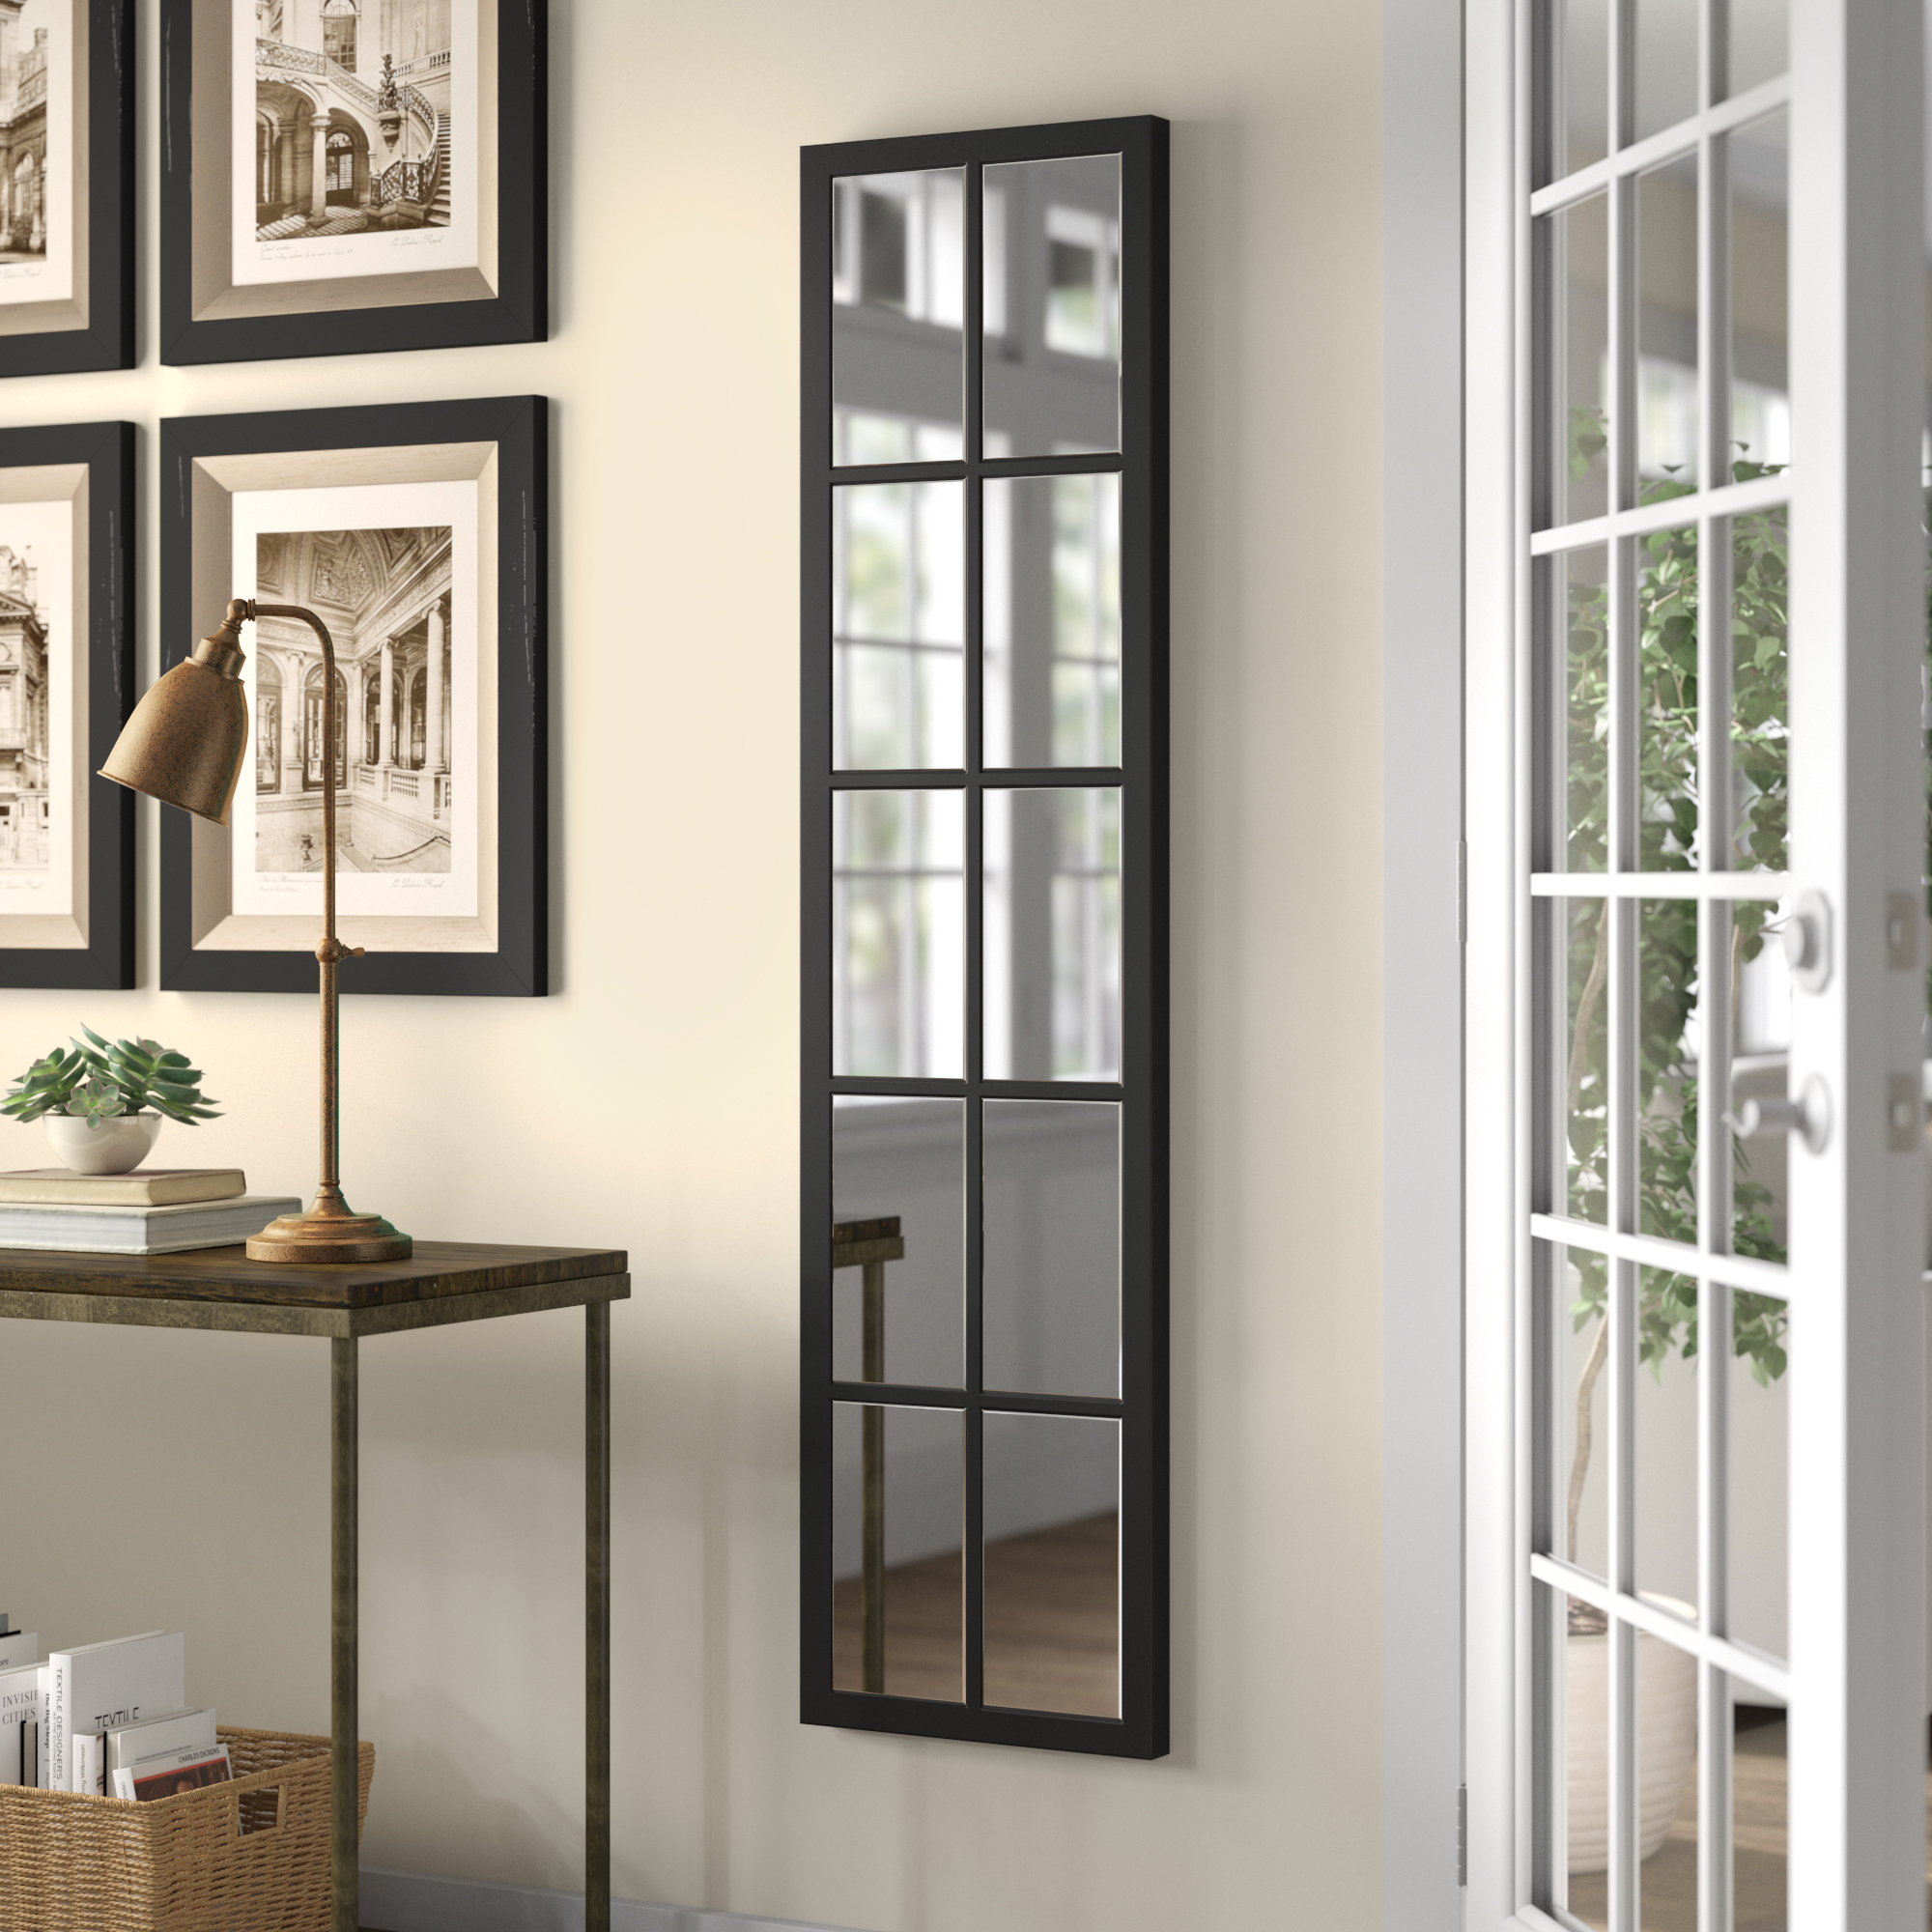 Hammonton Traditional Accent Mirror With Regard To Traditional Accent Mirrors (View 13 of 30)